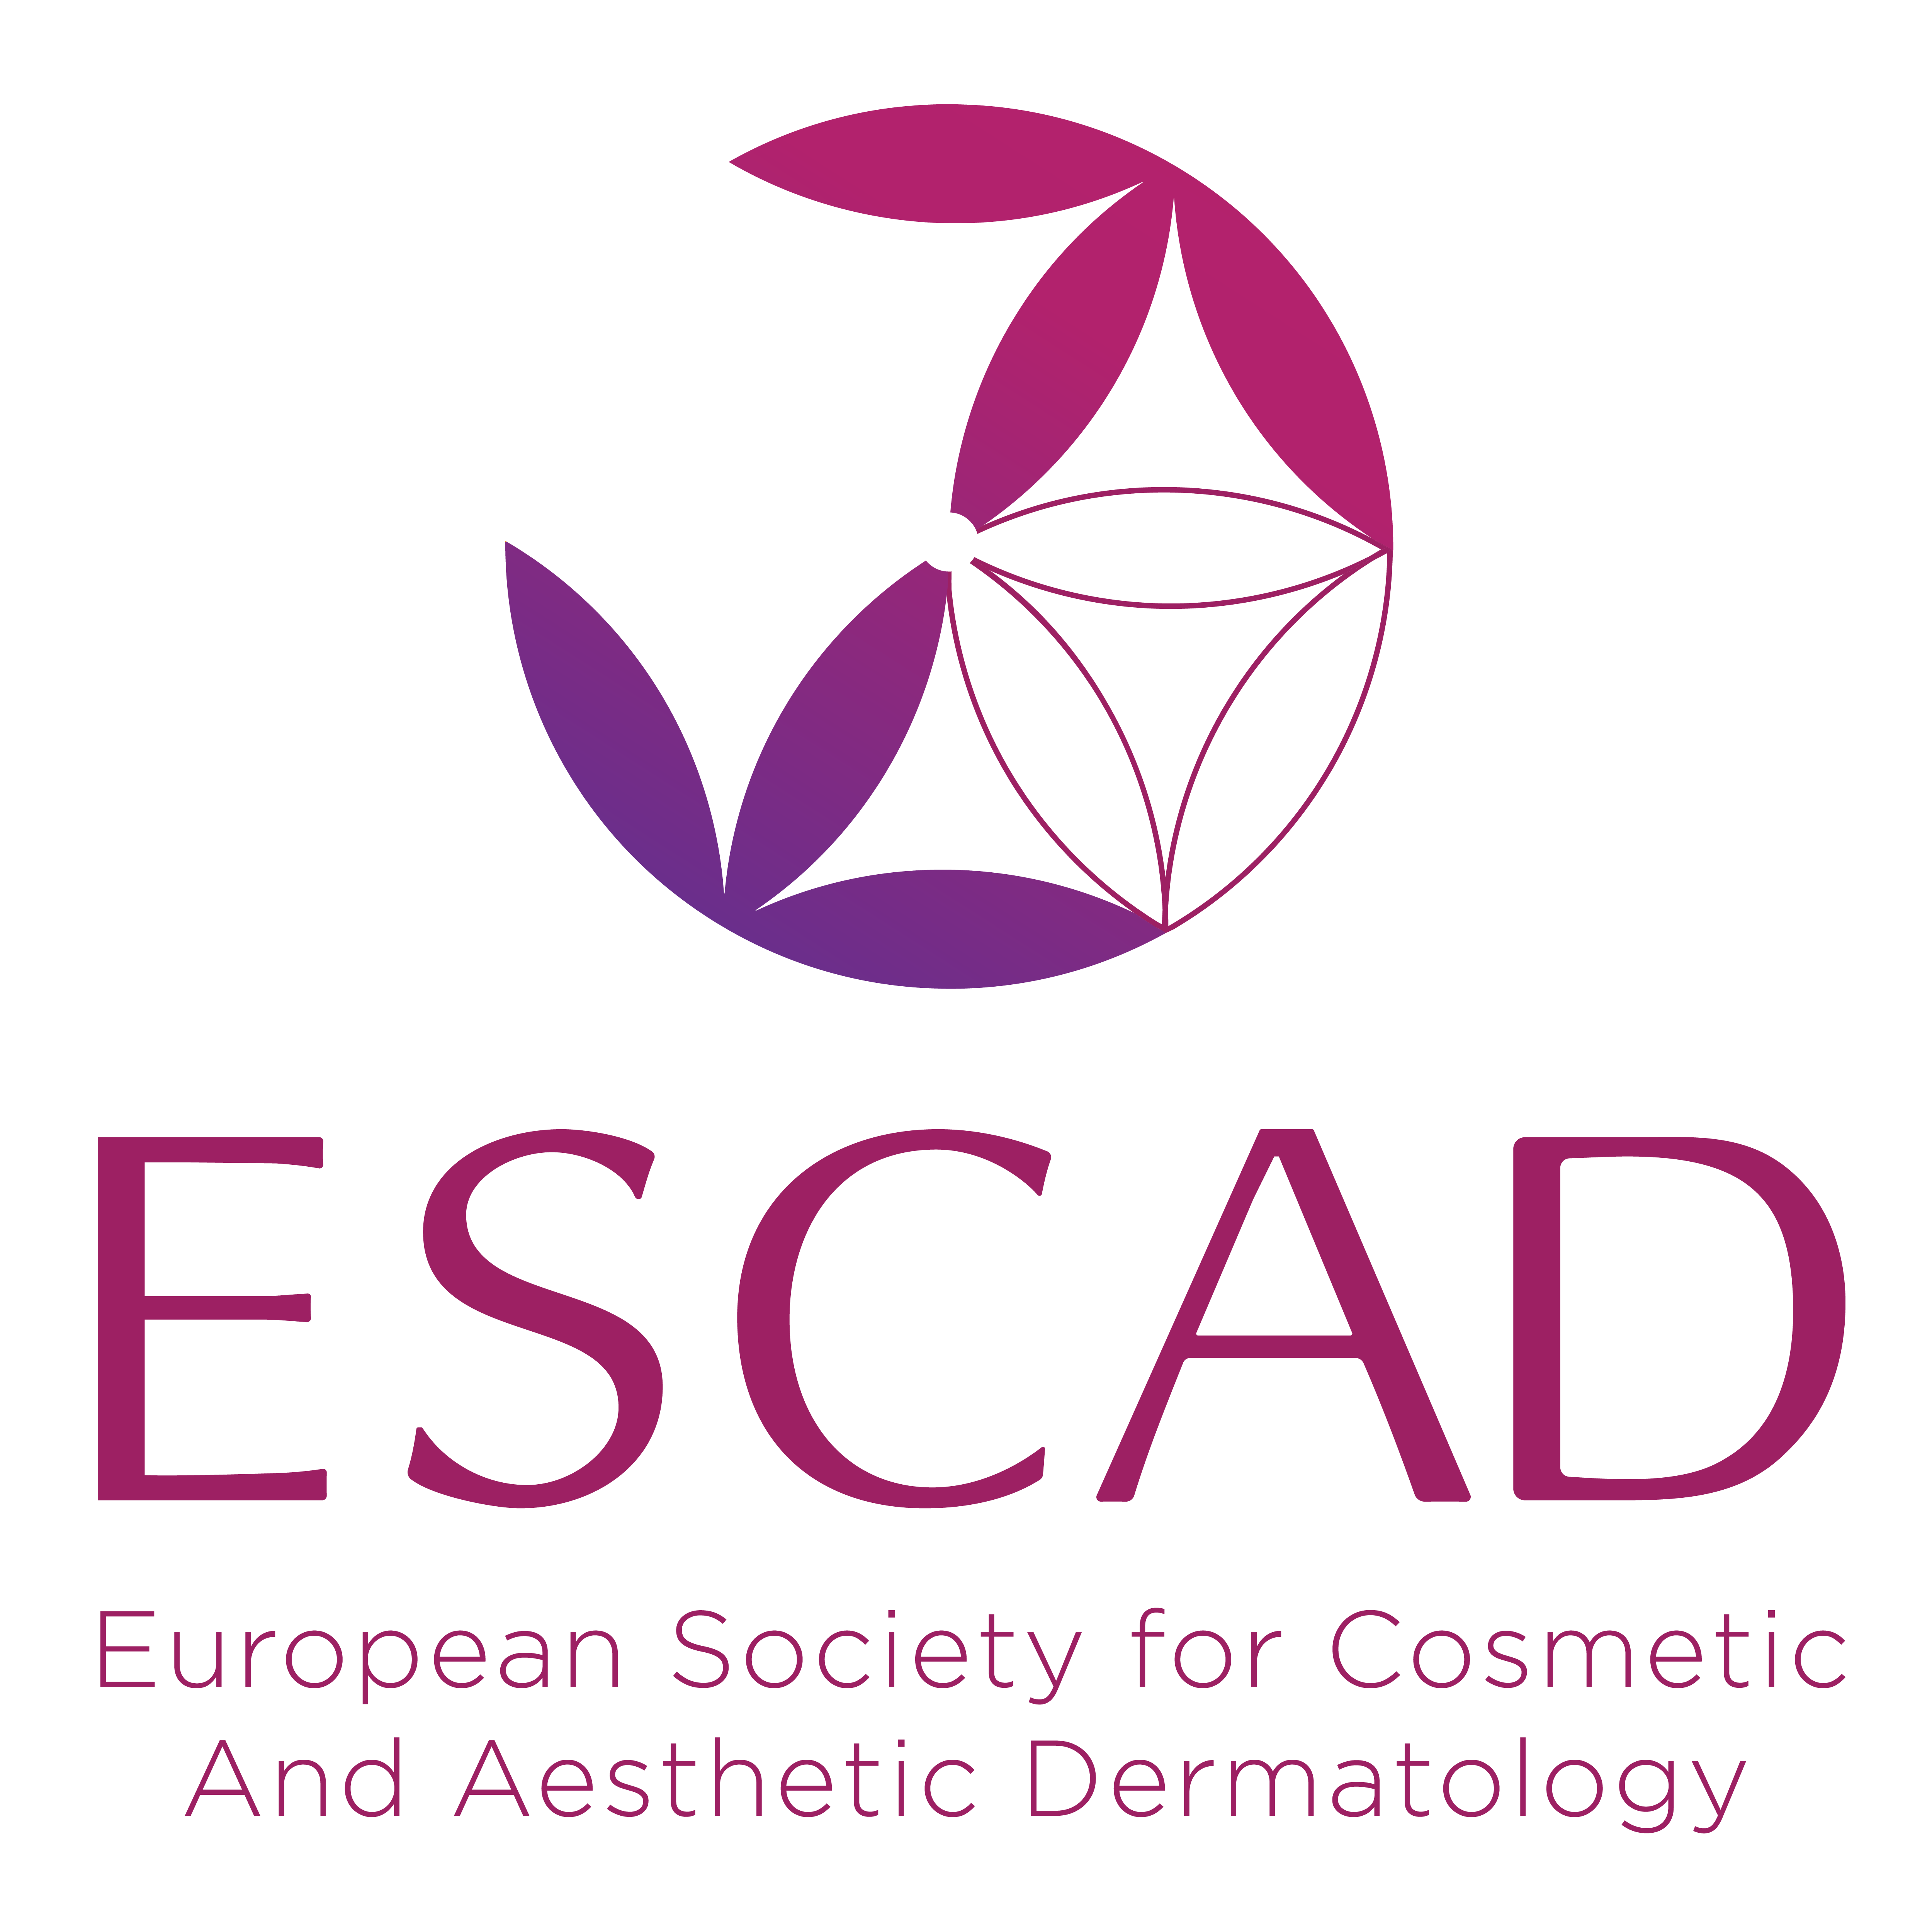 logo for European Society for Cosmetic and Aesthetic Dermatology